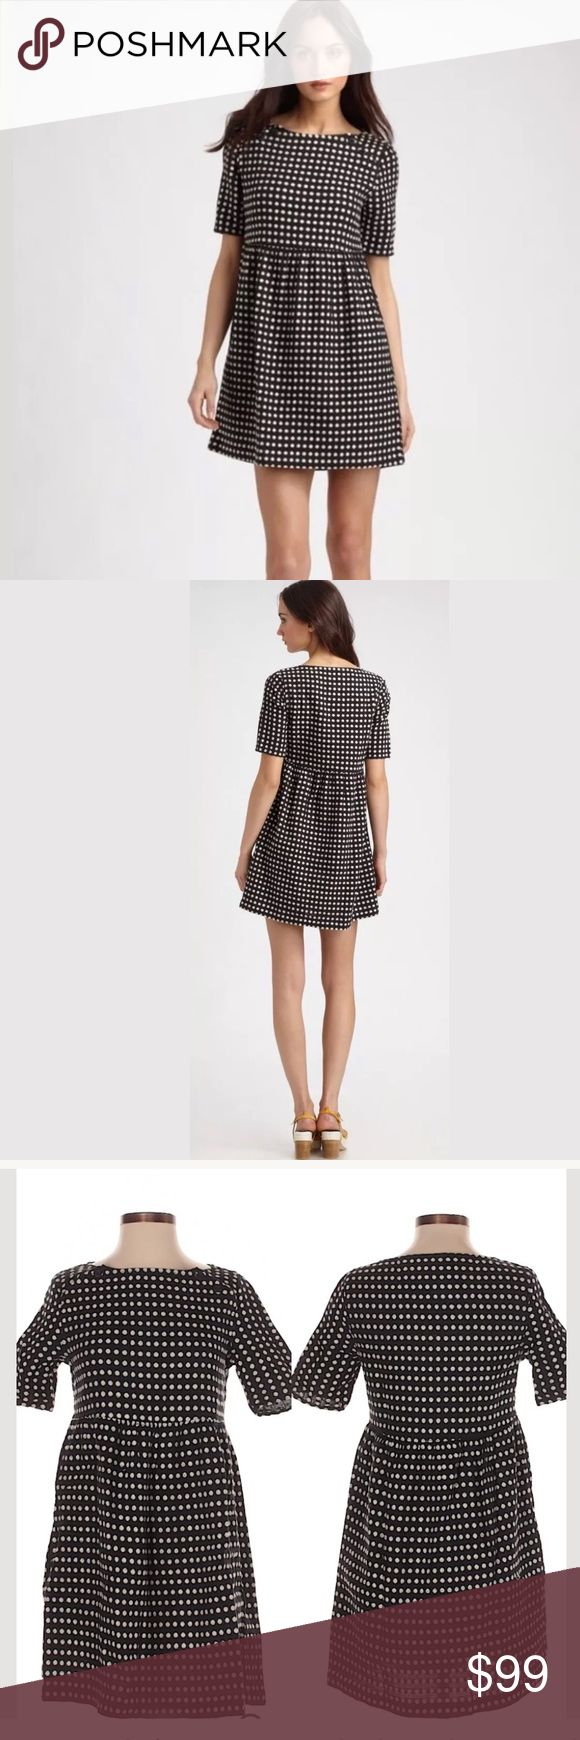 """Ace And Jig Maine Short Sleeved Mini Dress XS A-Line silhouette Short Crew neckline Black Polka dot print Approximate measurements:  Size XS 16 inches from armpit to armpit. 31"""" Length Materials 52% Linen, 48% Cotton Condition Minimal wash wear. Minimal wear to Textured Polka dots. Ace & Jig Dresses Mini"""